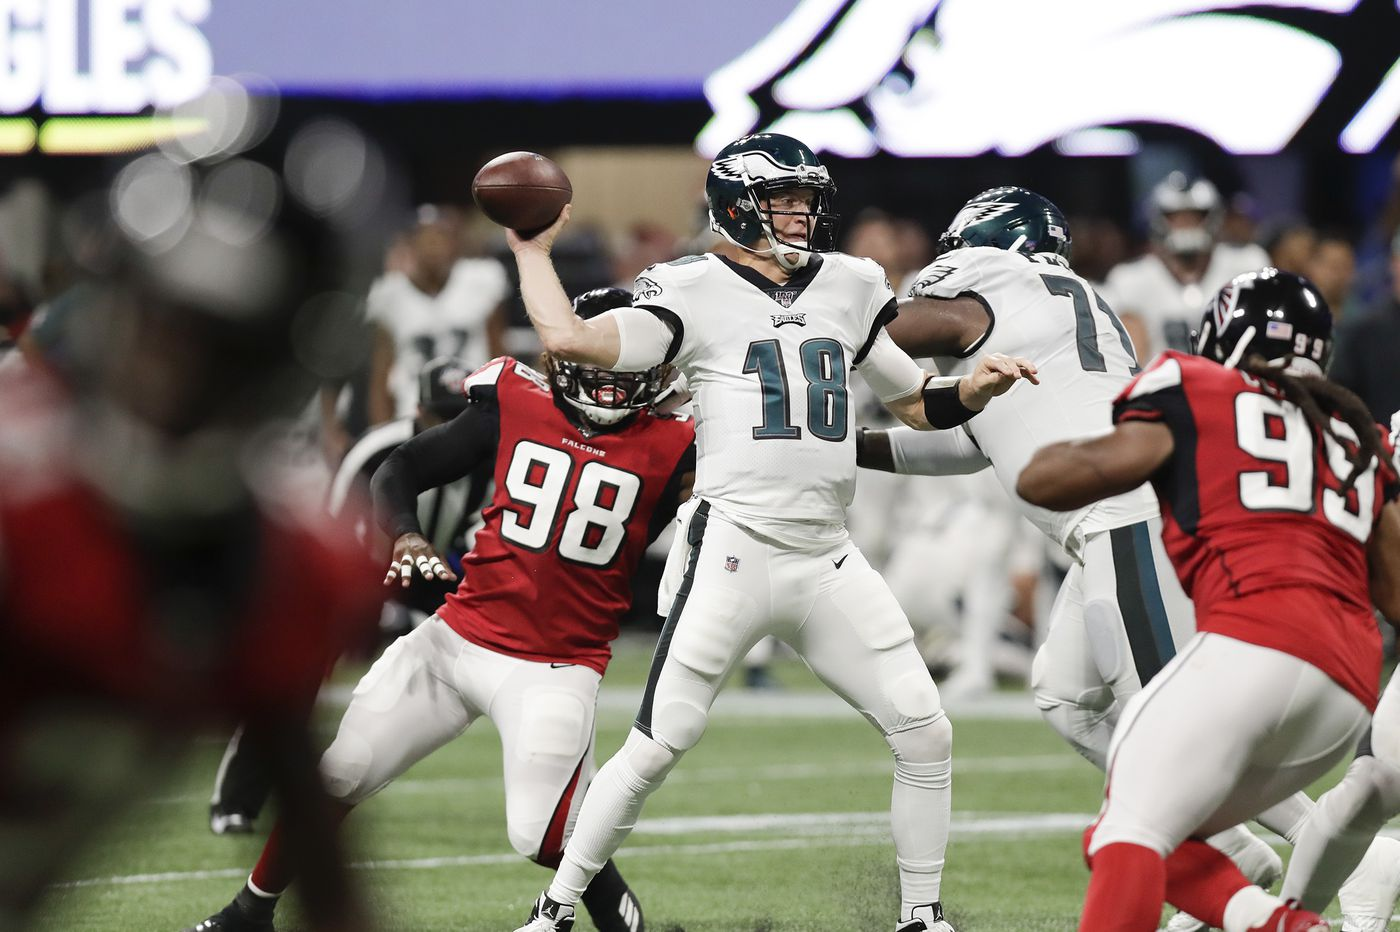 The chance for a taste of the playoffs helped lure Josh McCown to the Eagles; he's savoring the moment